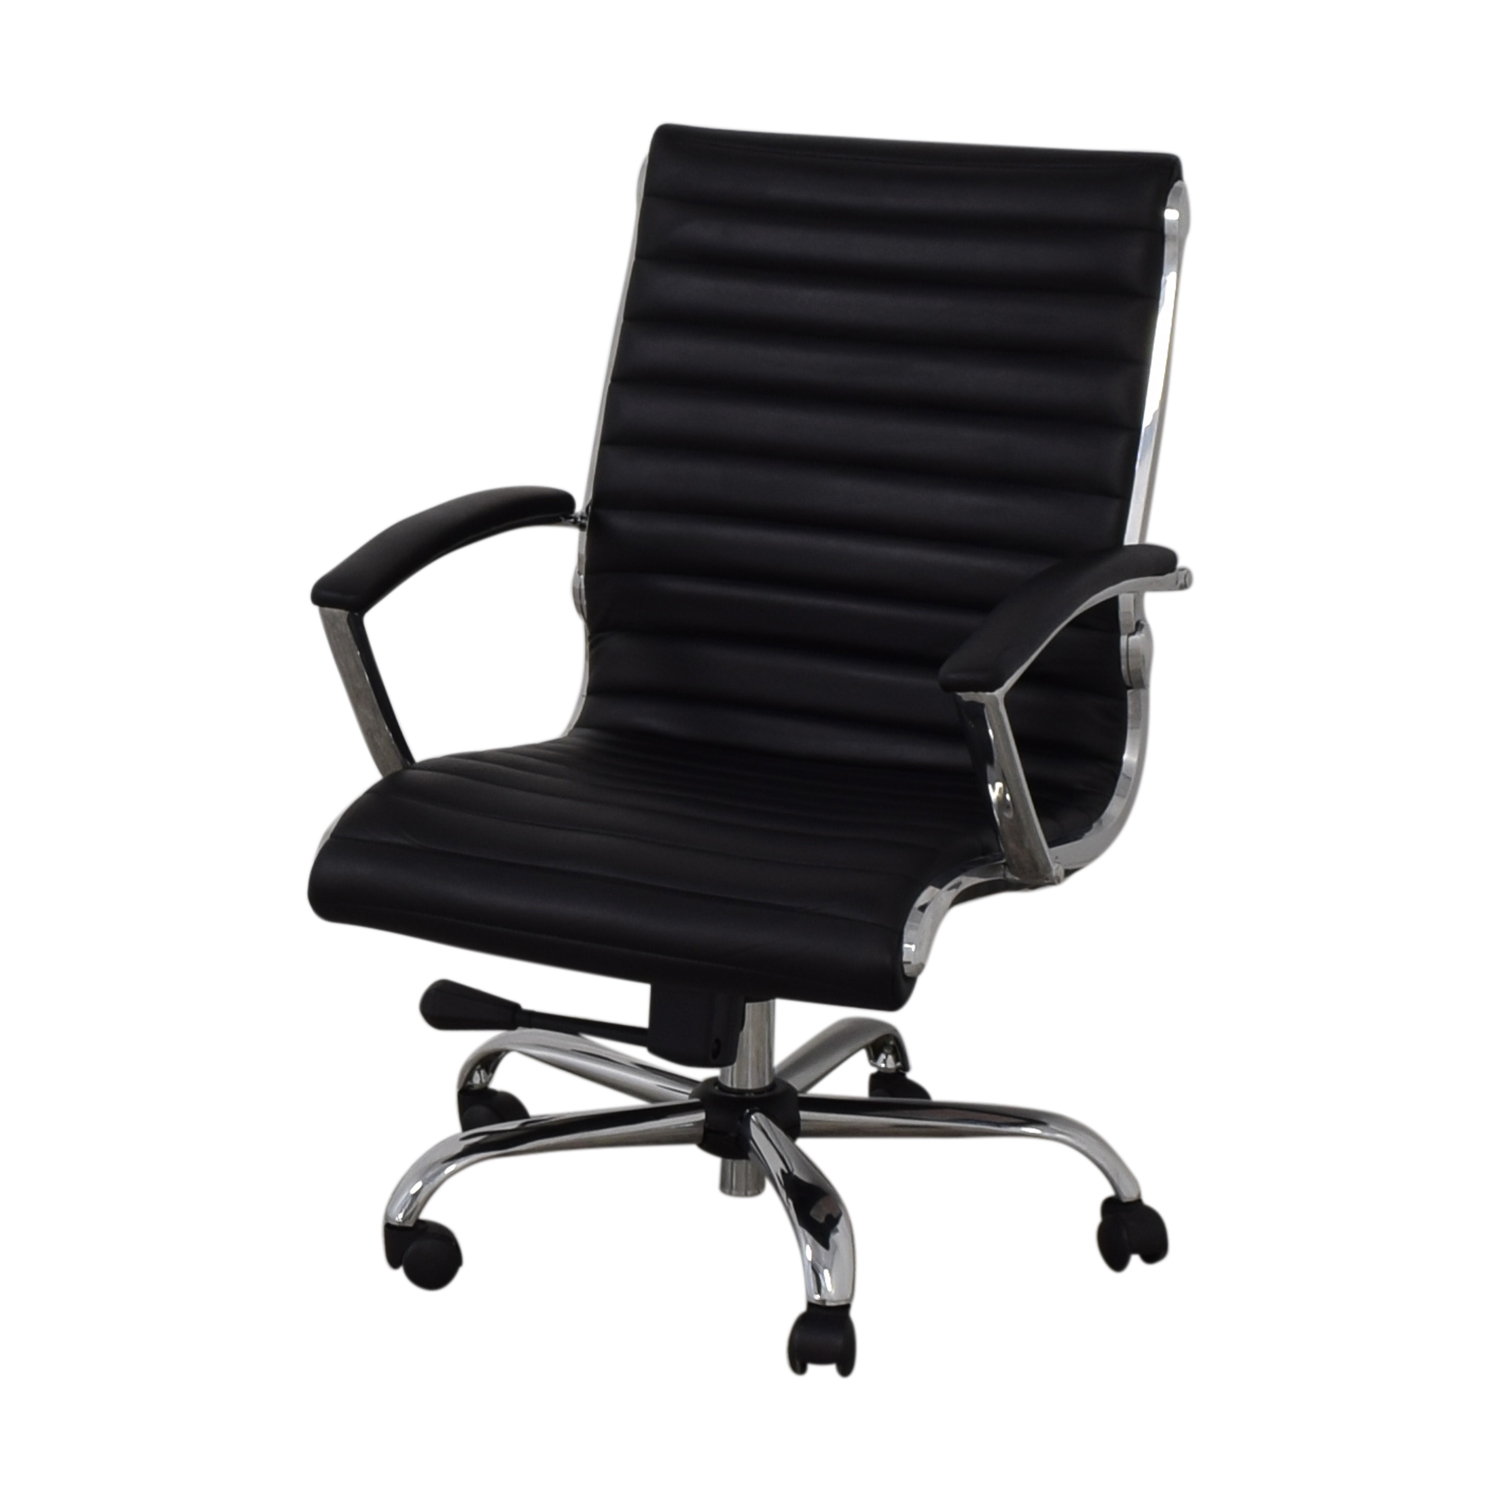 buy Staples Adjustable Black Office Chair Staples Home Office Chairs